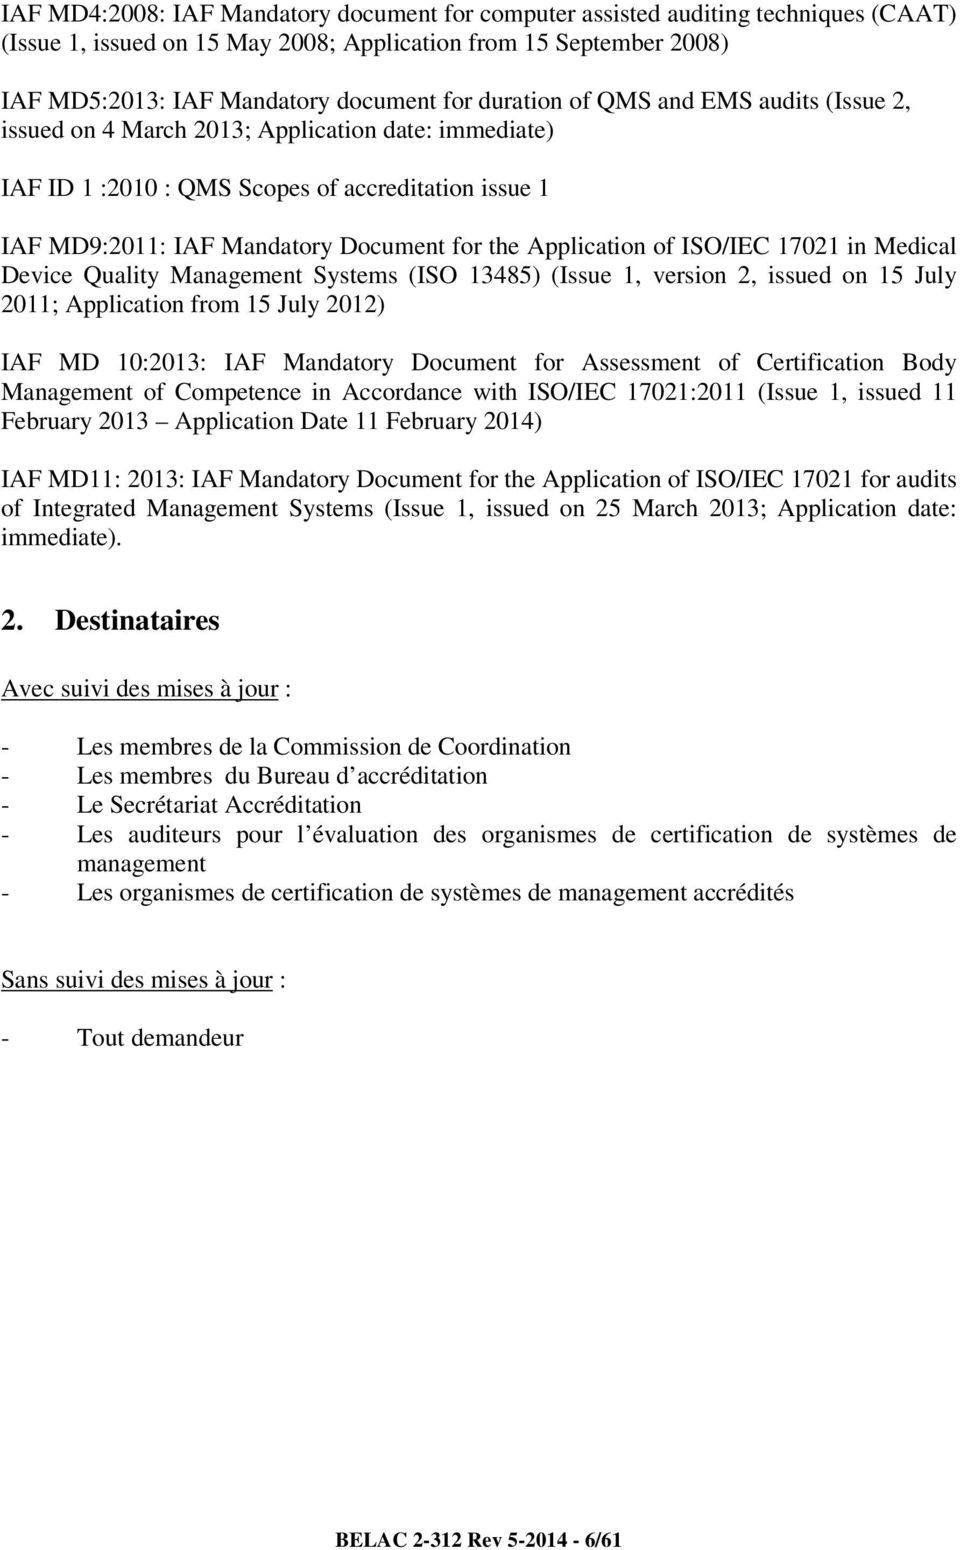 Application of ISO/IEC 17021 in Medical Device Quality Management Systems (ISO 13485) (Issue 1, version 2, issued on 15 July 2011; Application from 15 July 2012) IAF MD 10:2013: IAF Mandatory